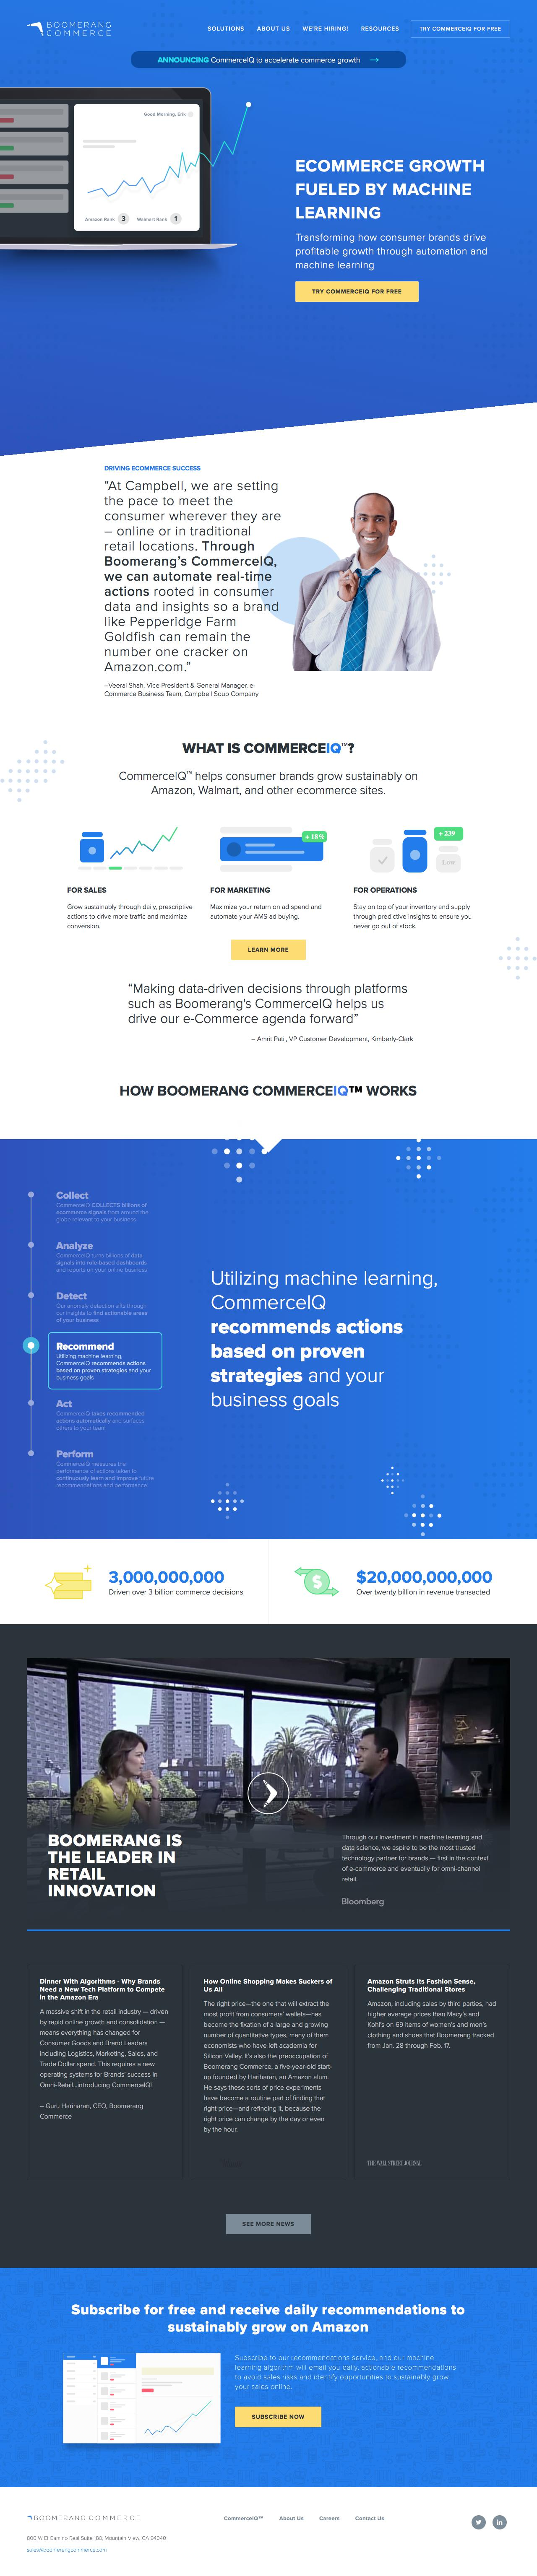 Screenshot of boomerangcommerce.com - ECOMMERCE GROWTH FUELED BY MACHINE LEARNING — Boomerang Commerce - captured March 18, 2018